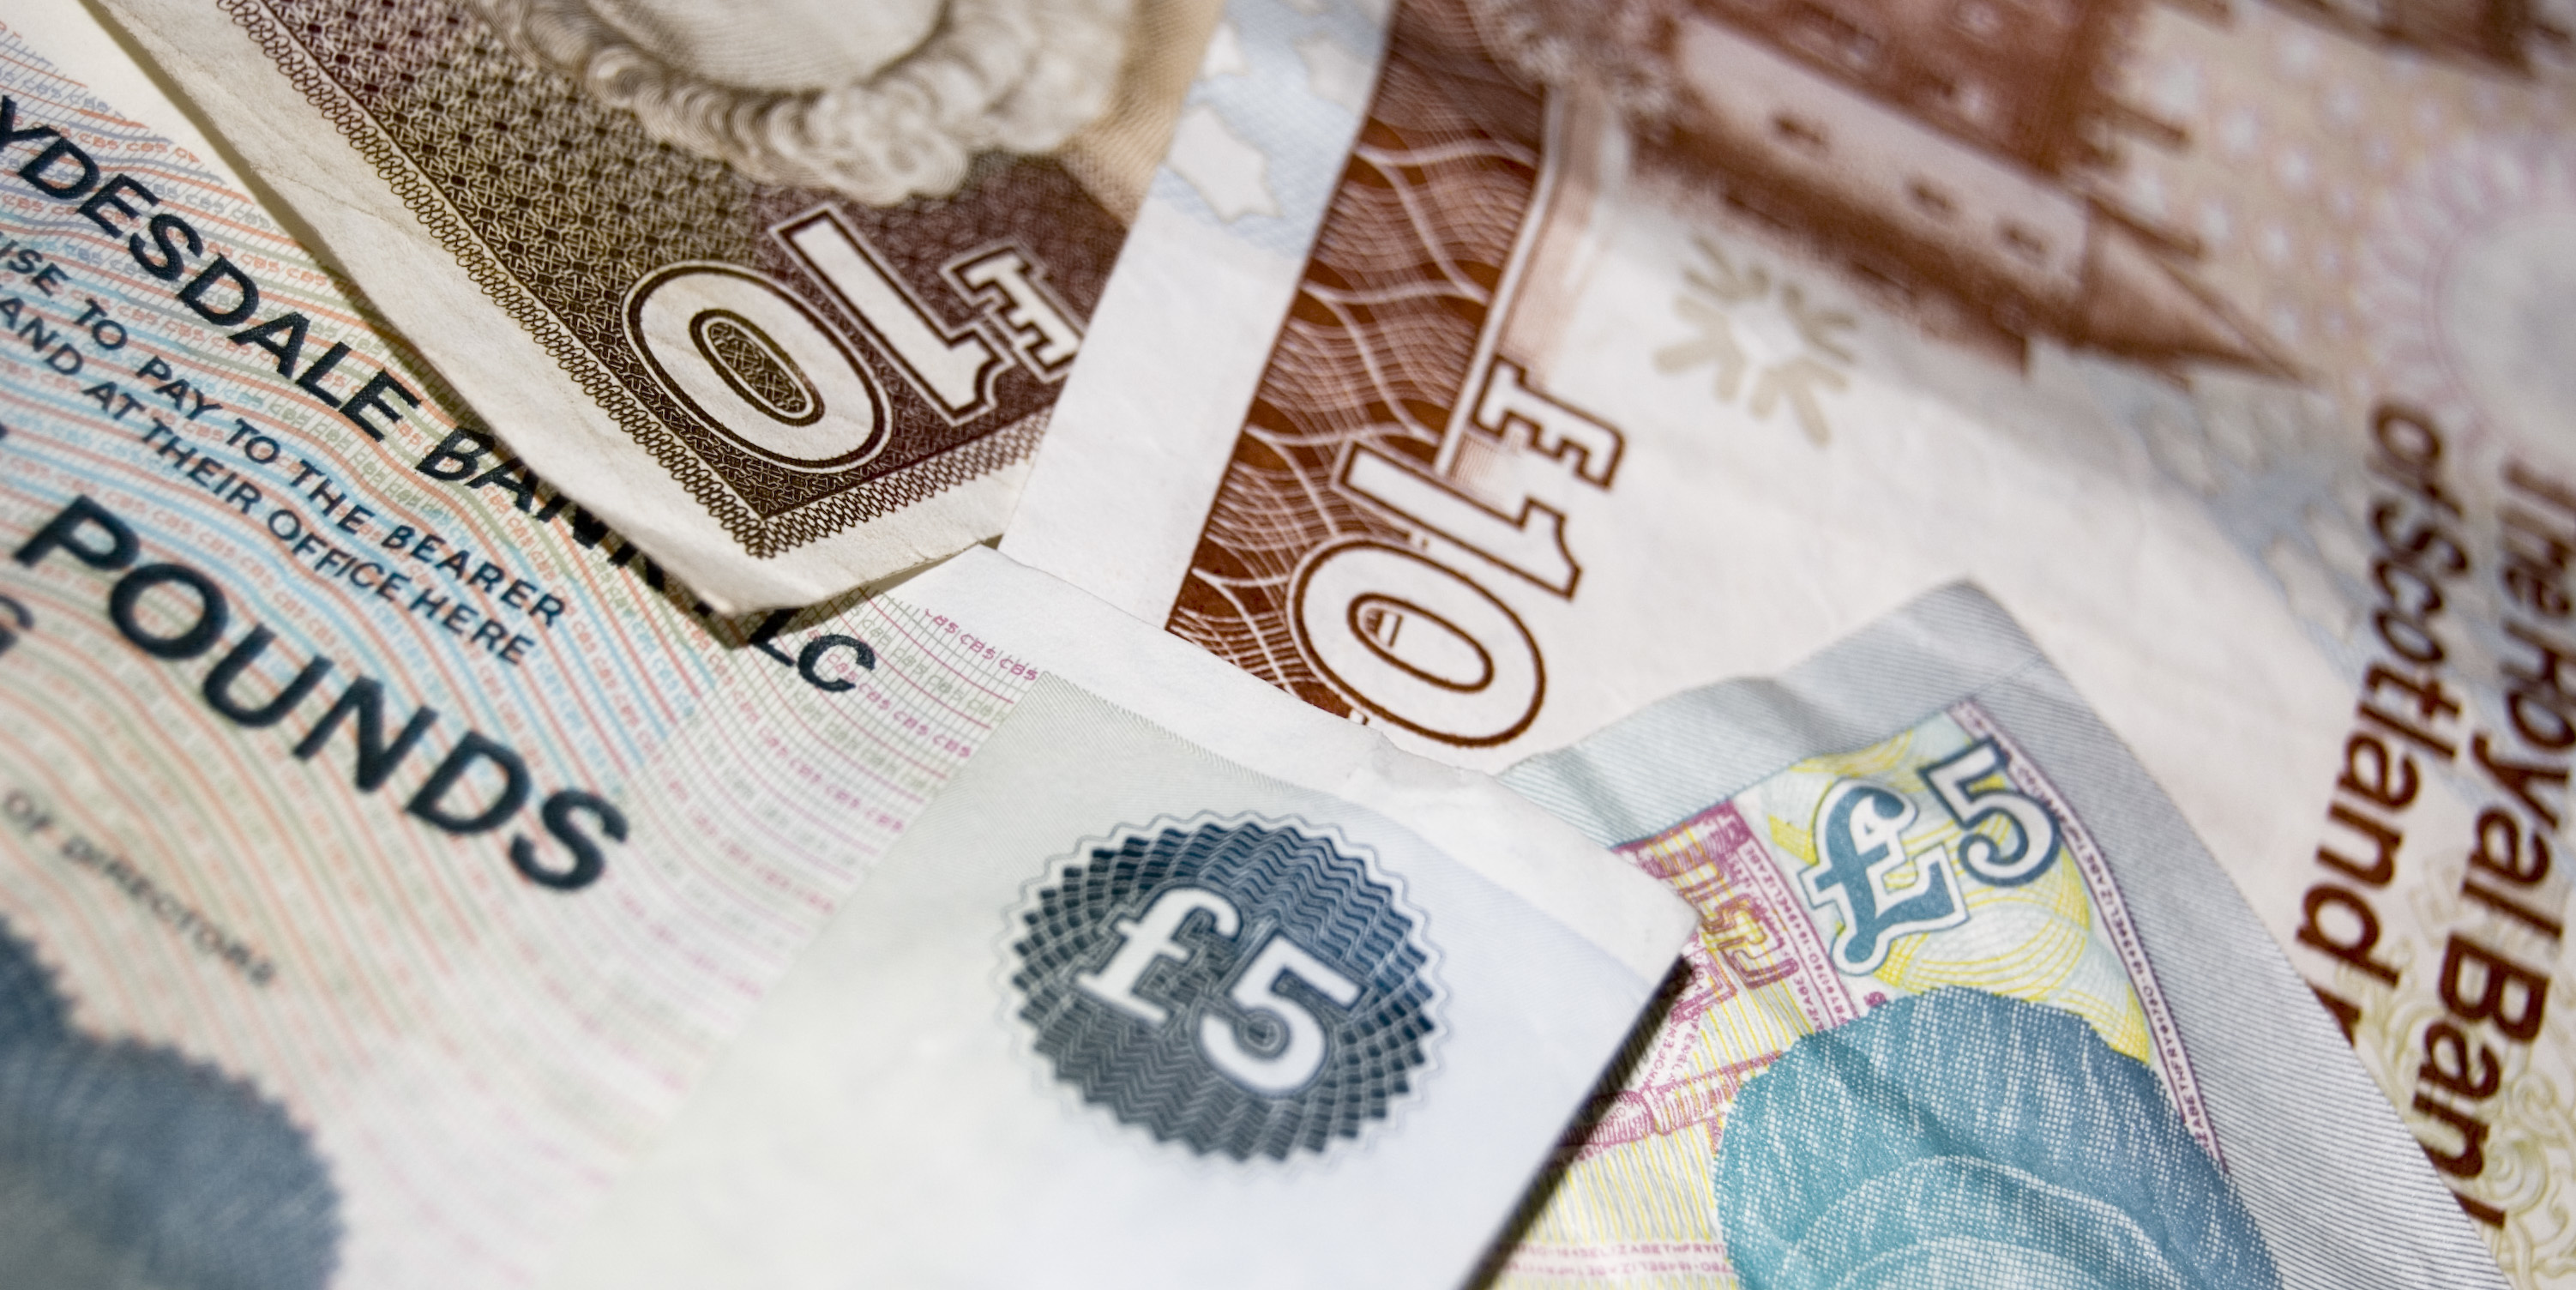 Scottish Currency Research | Scottish Currency Perception | Scottish Money Research | Censuswide Glasgow | Censuswide Scotland